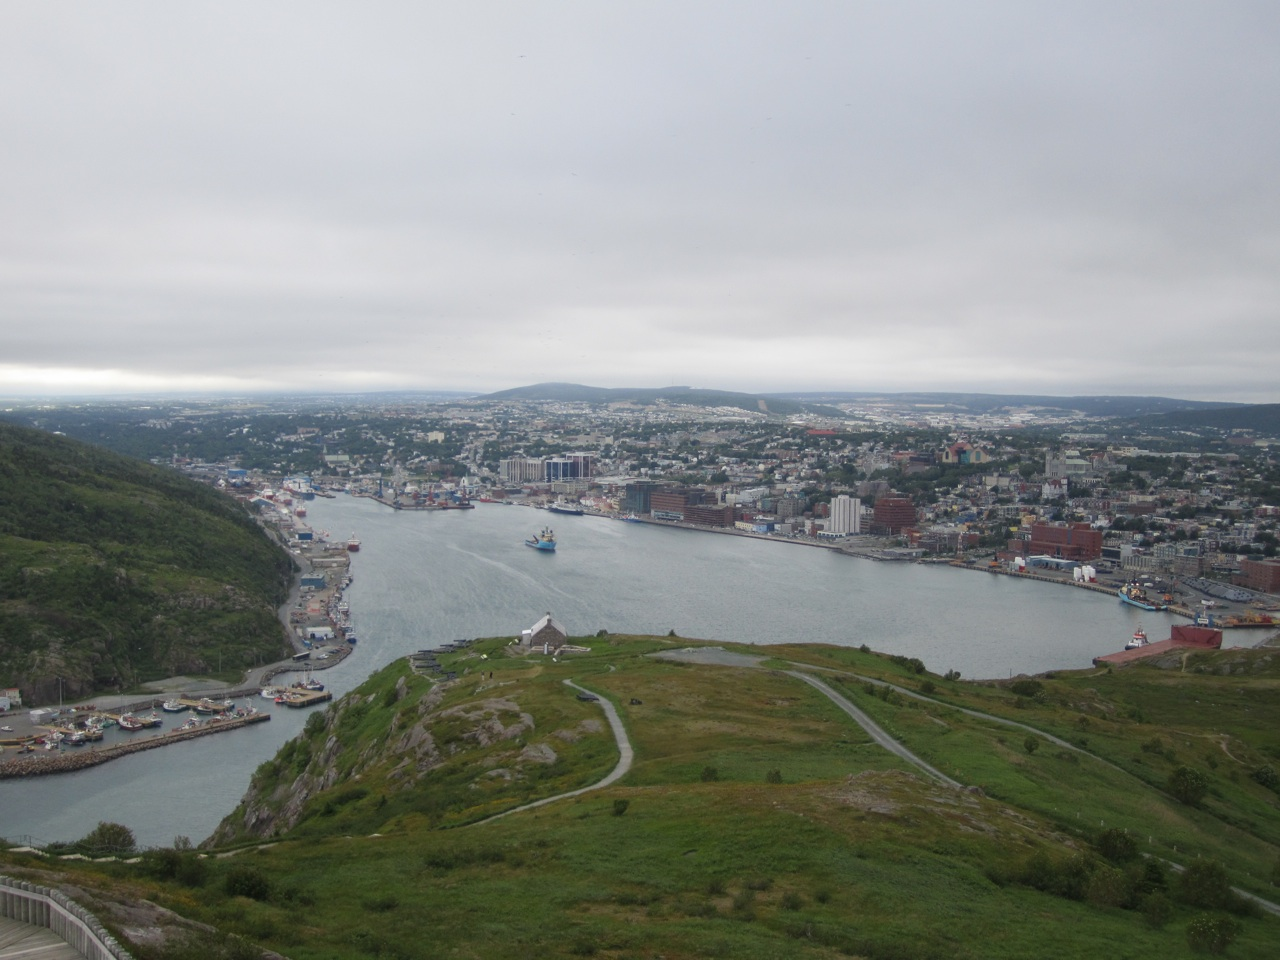 A Picture Of St. John's From A Top A Hill